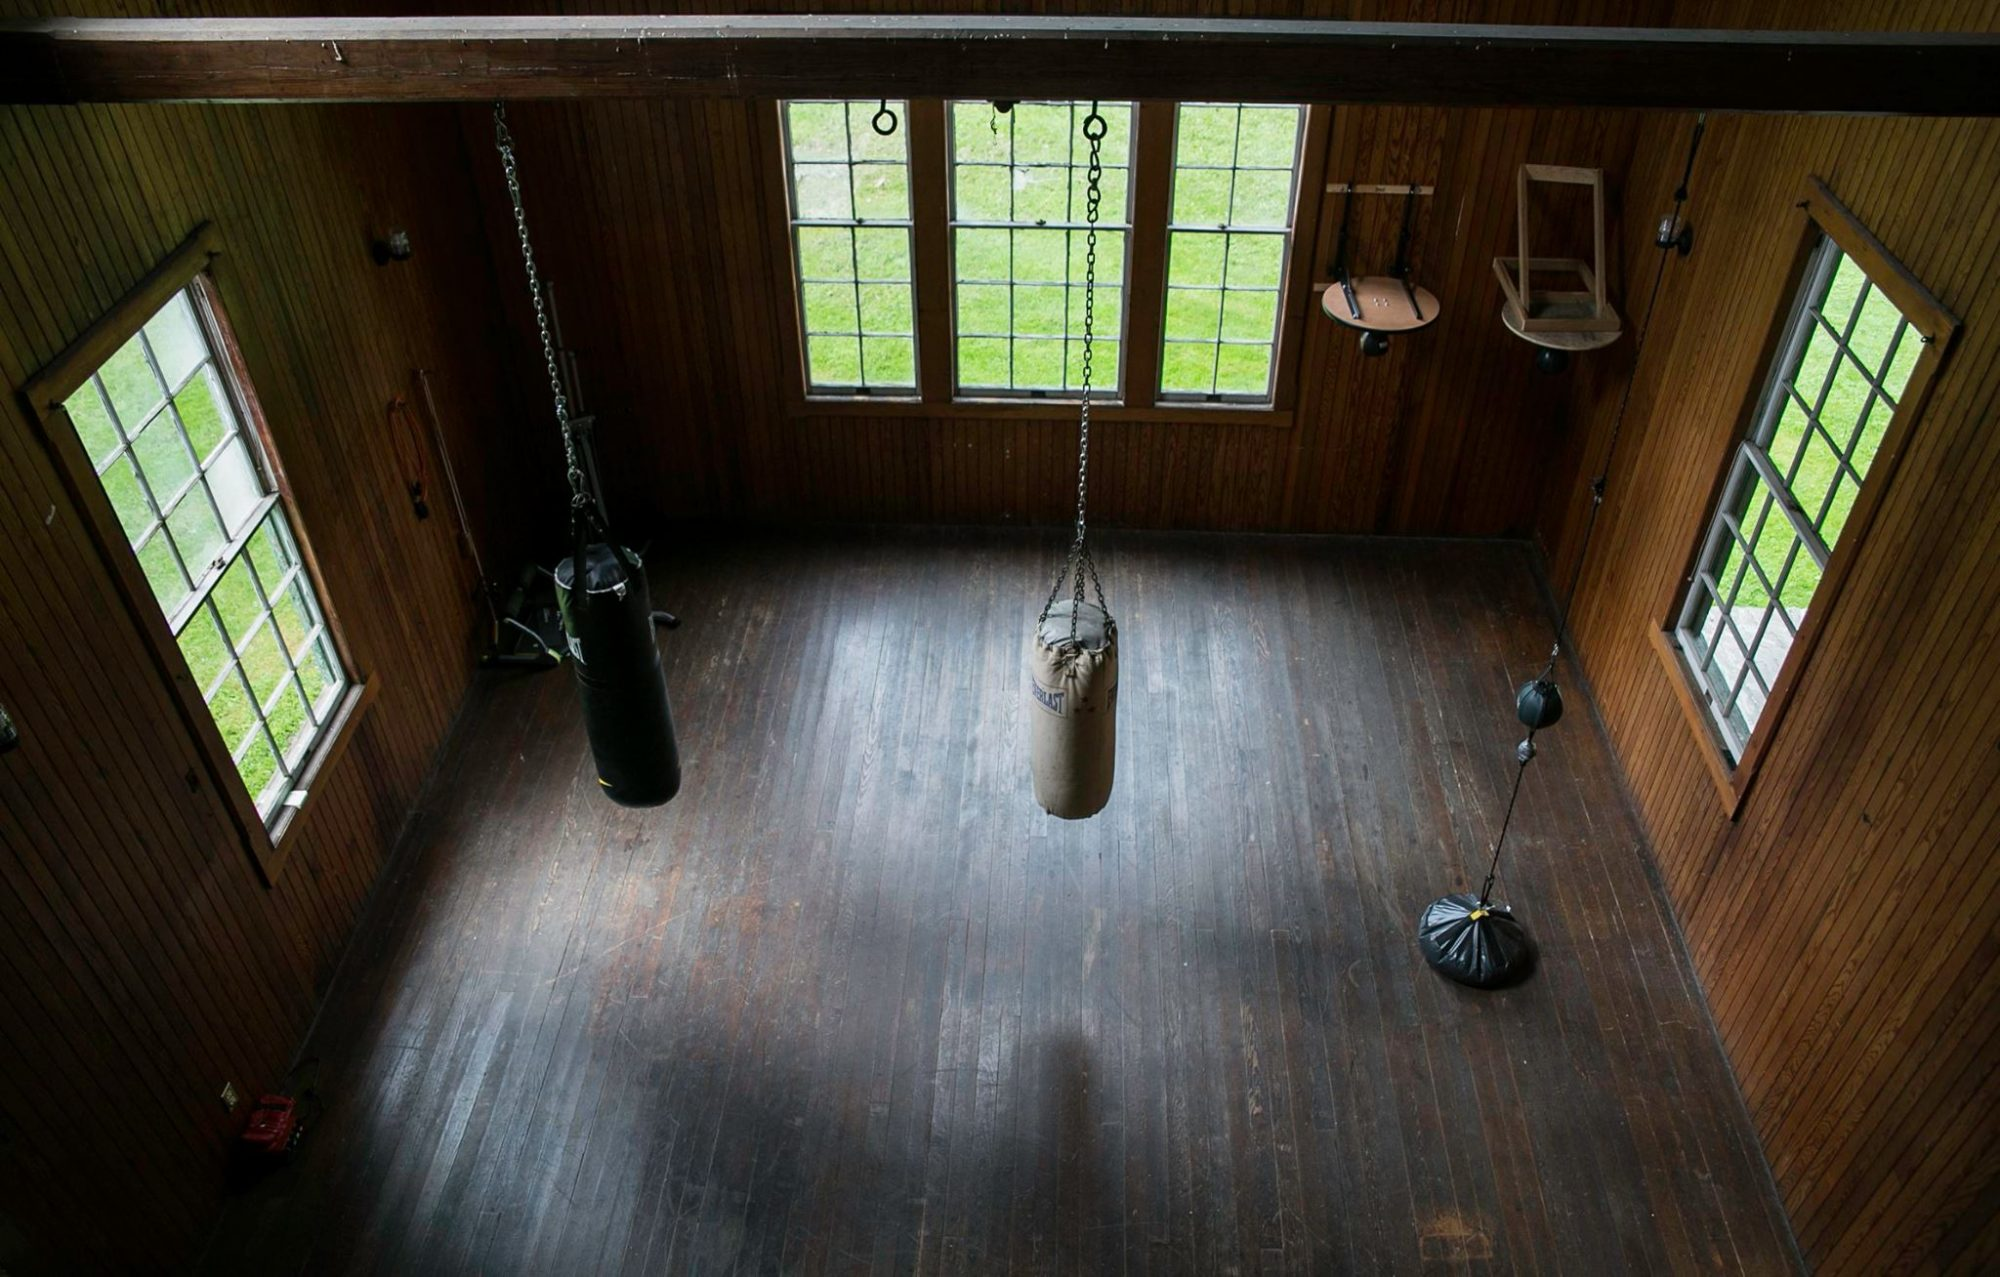 View of boxing class room at Clausen